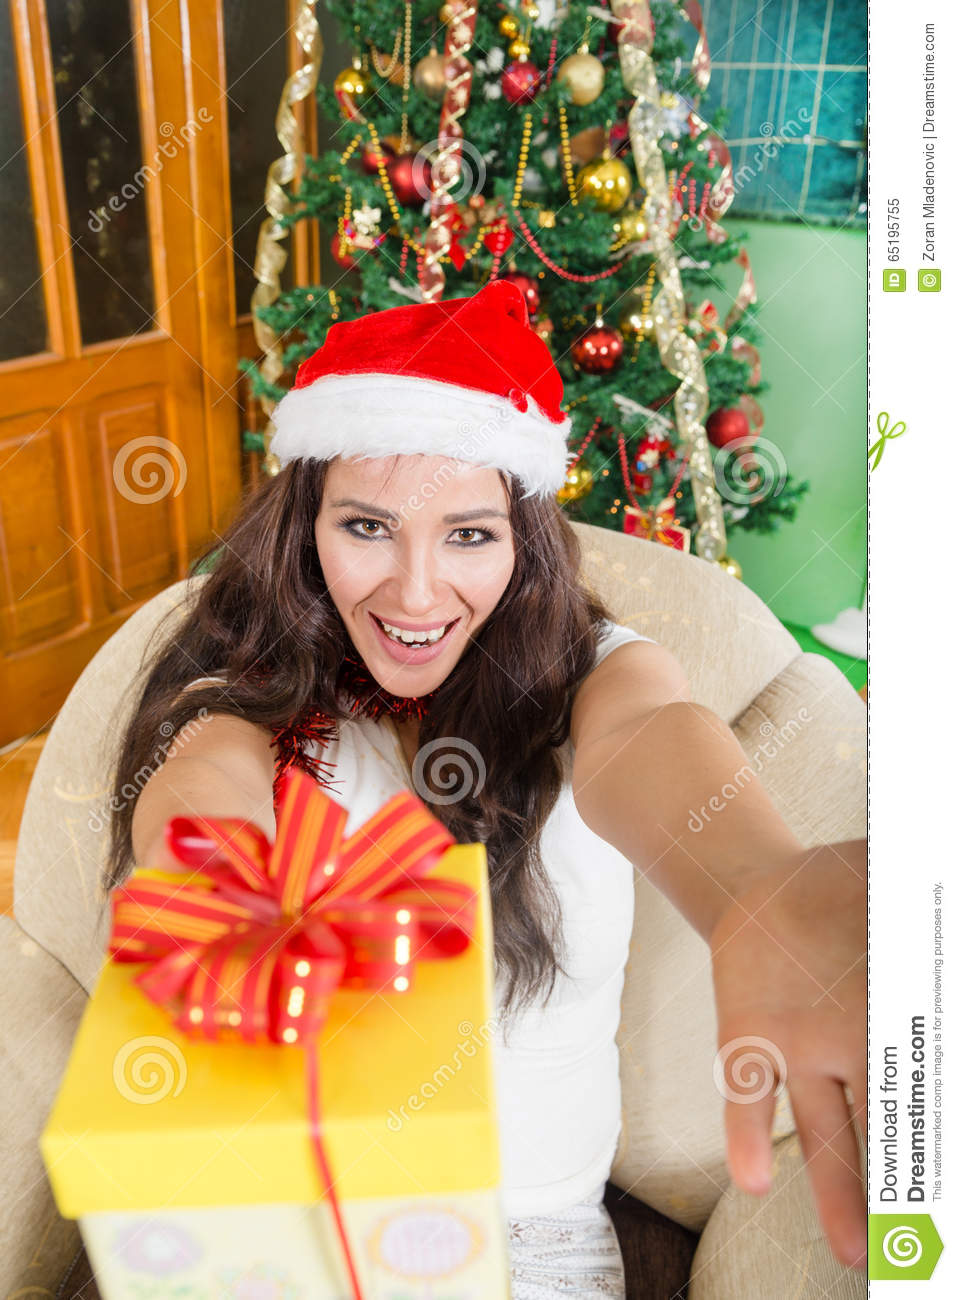 Happy young woman proffering gift box with joy and generosity